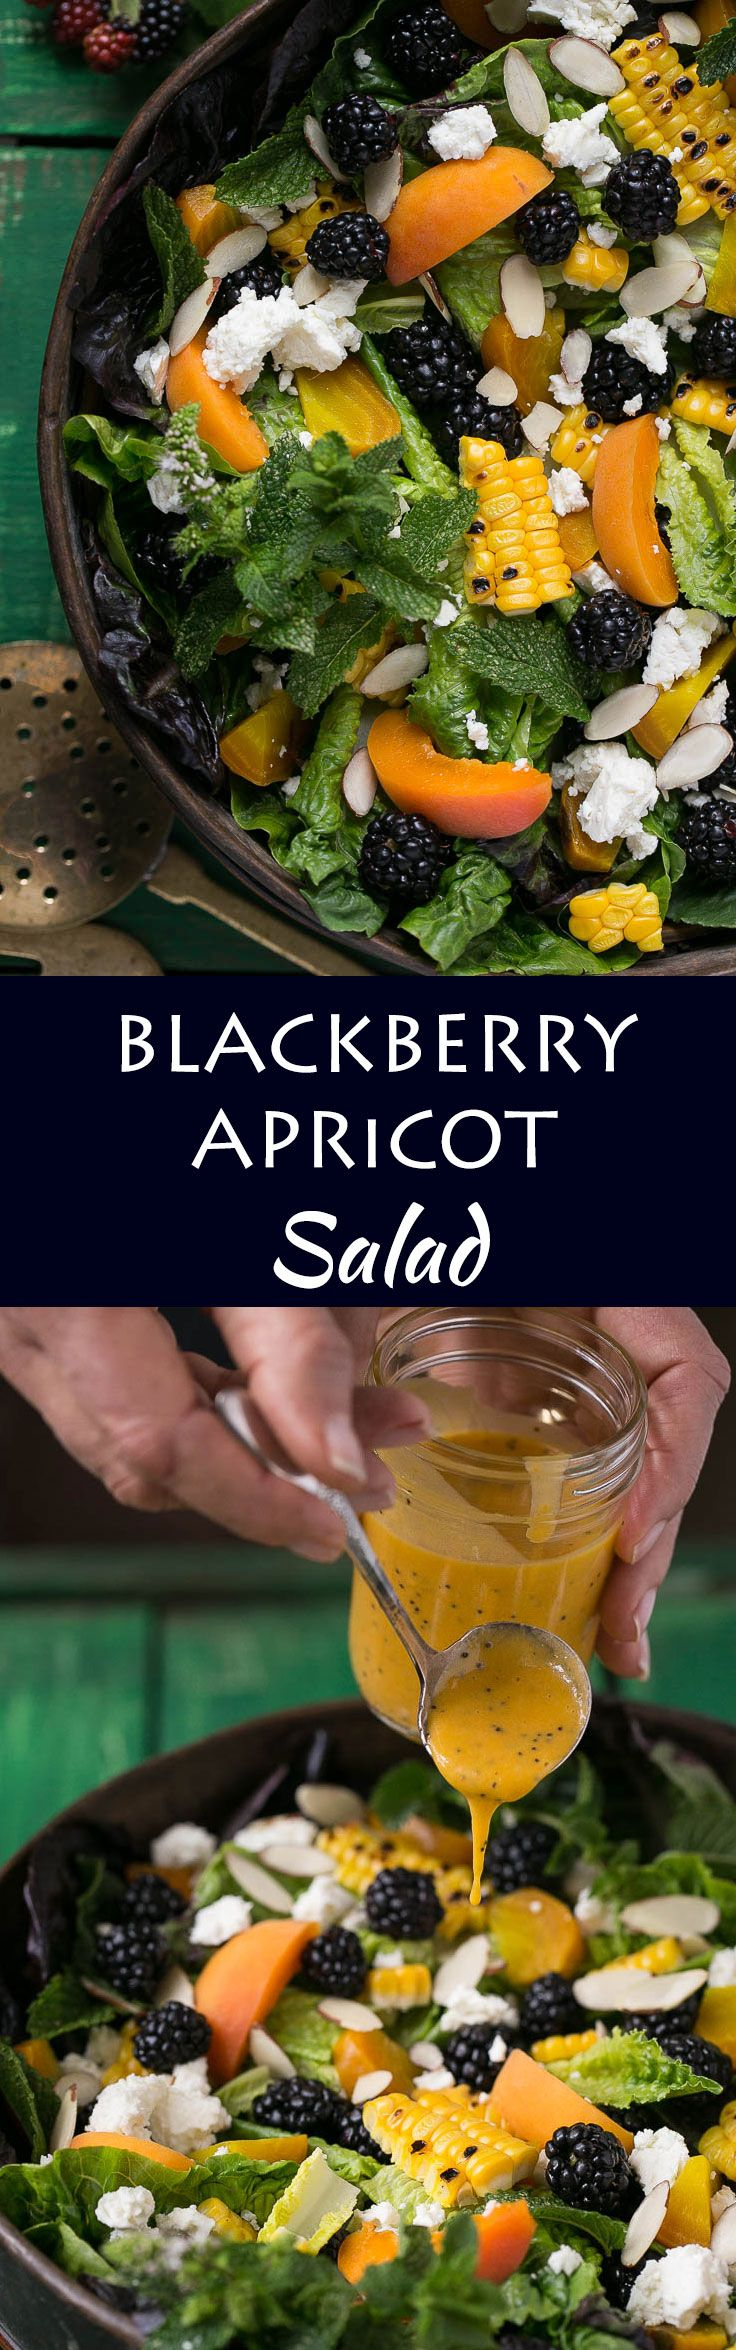 This blackberry apricot salad uses summer's finest produce and the creamy apricot poppyseed dressing is to die for!